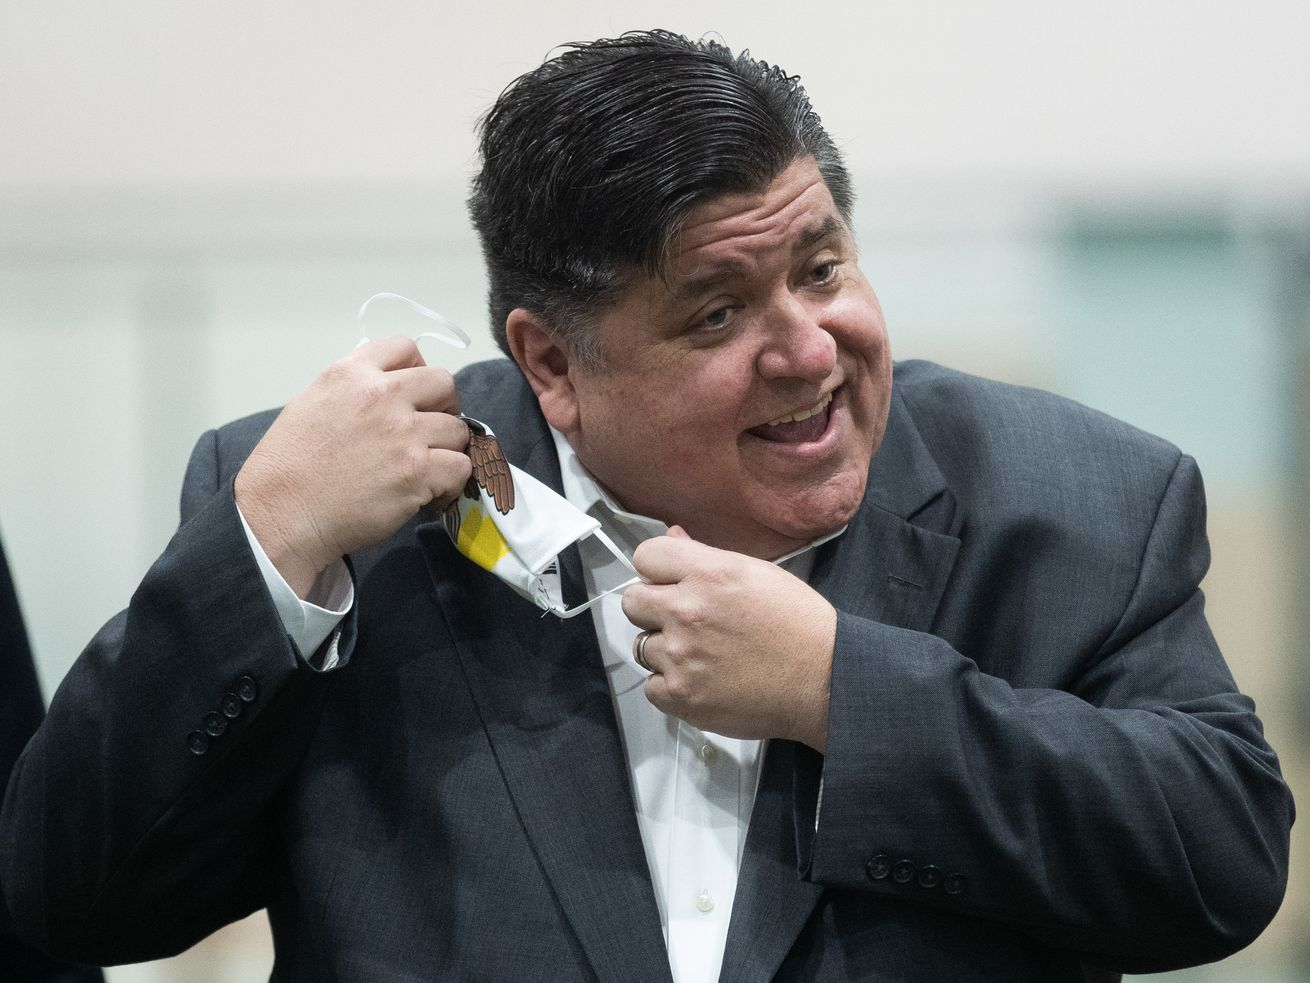 Gov. J.B. Pritzker takes off his mask before speaking to the media during an event in the Pullman neighborhood in October.